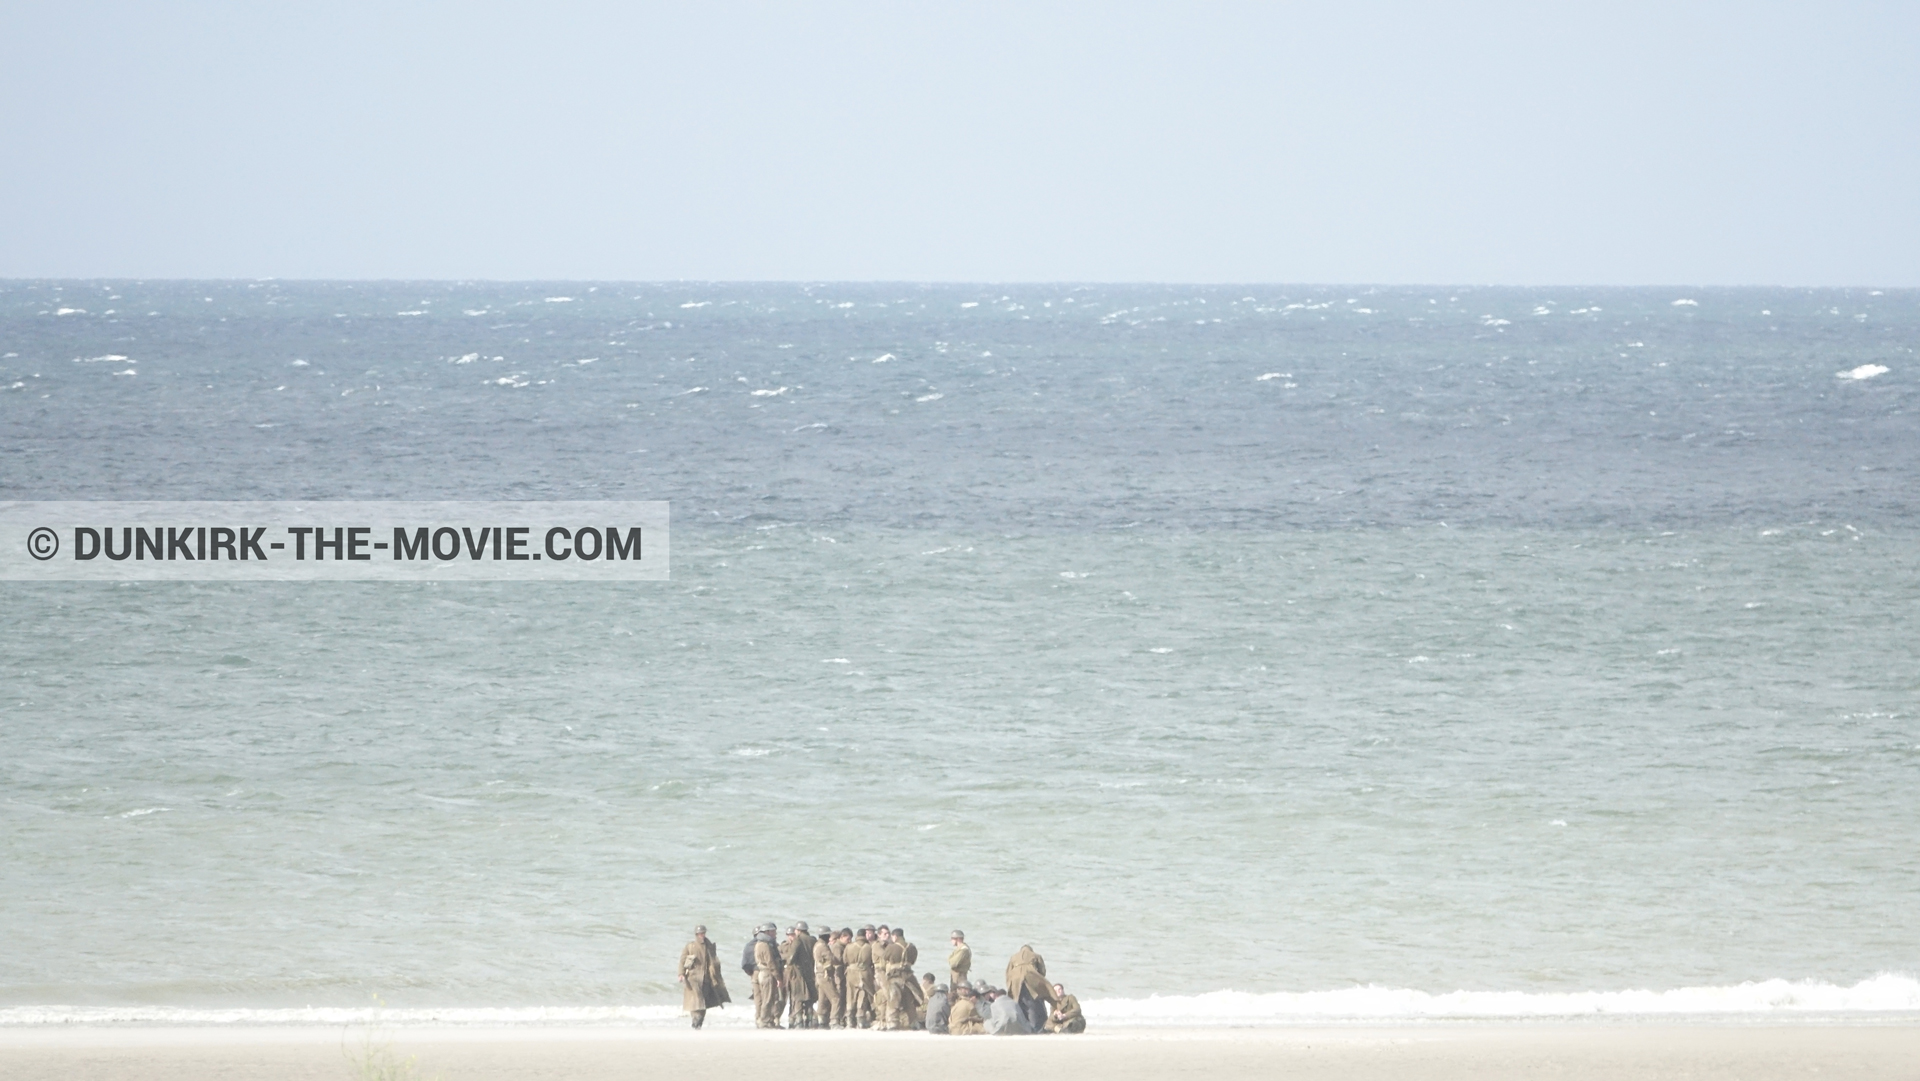 Picture with supernumeraries, beach,  from behind the scene of the Dunkirk movie by Nolan